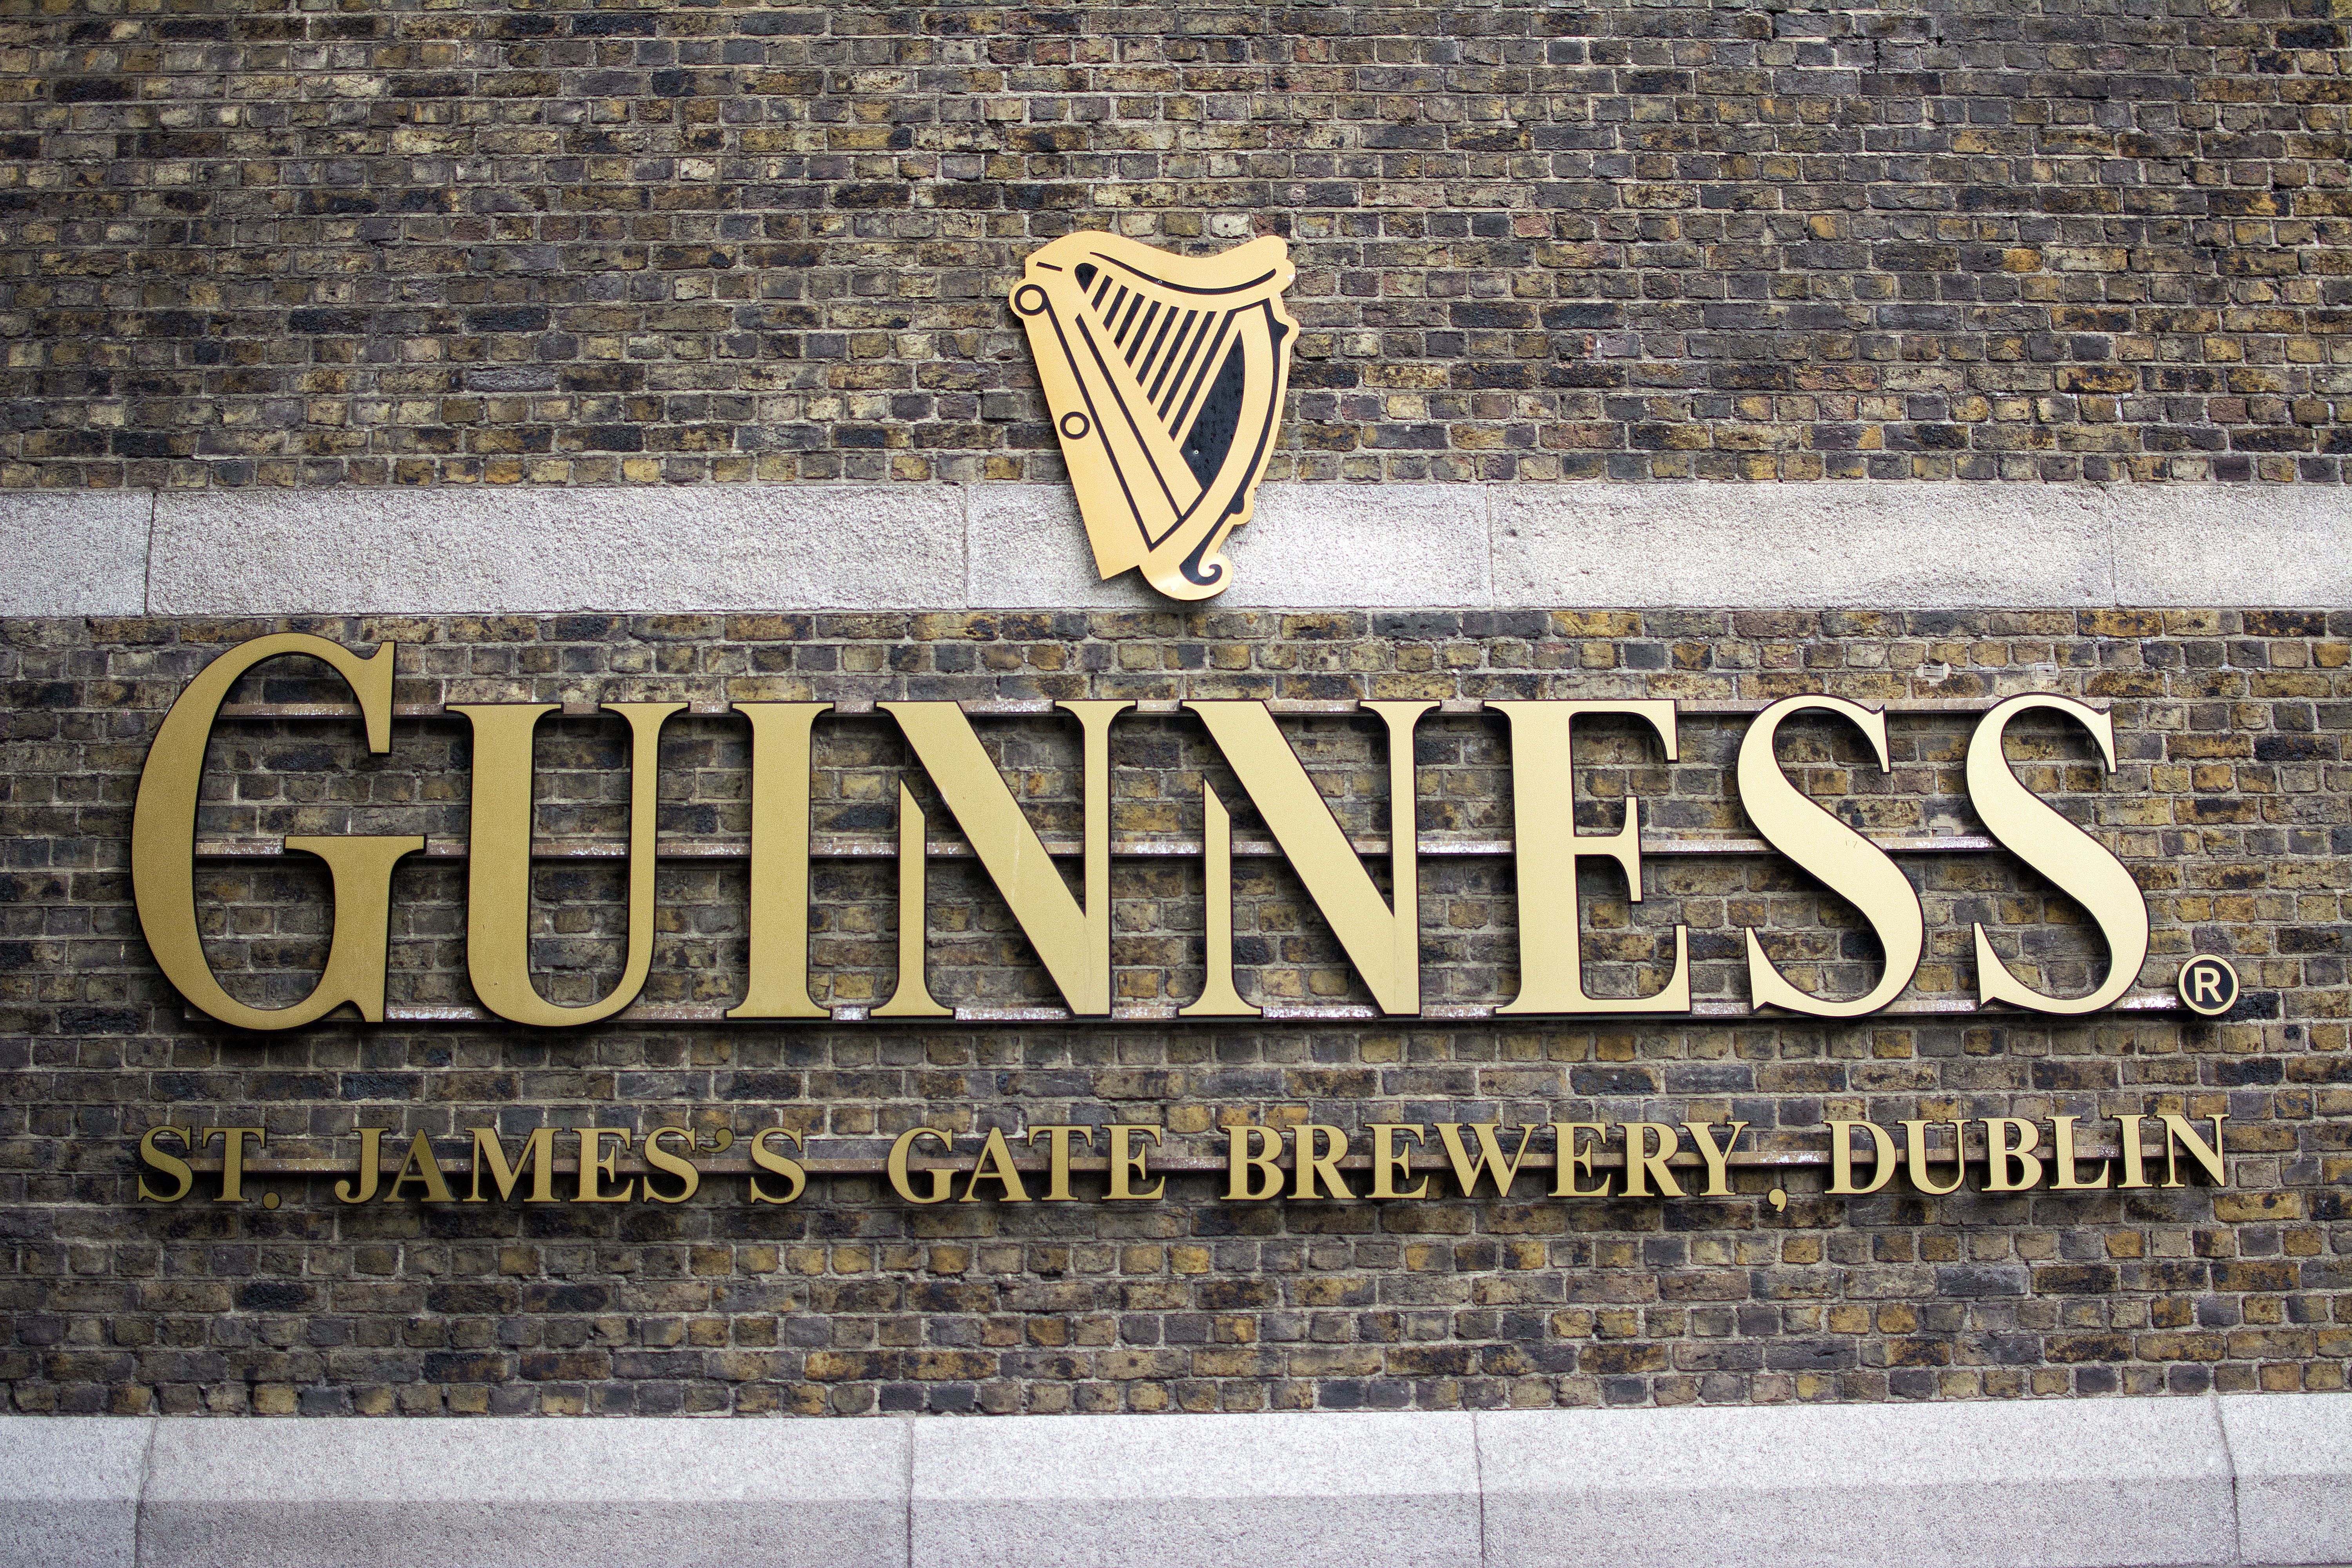 Guinness Storefront sign